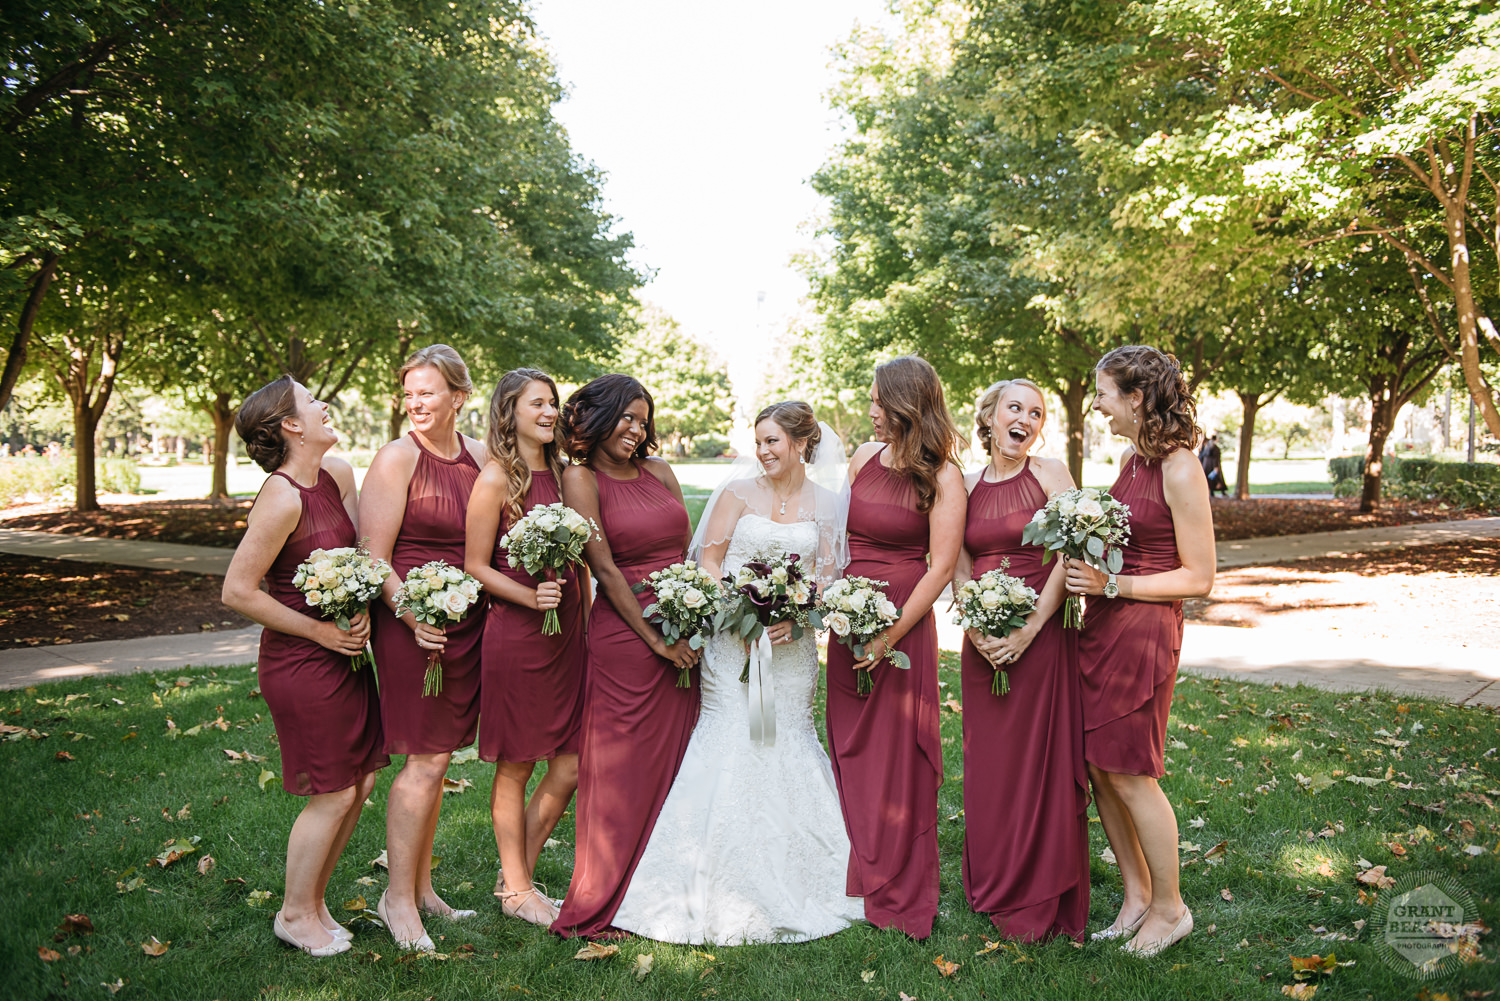 Grant Beachy wedding photographer, south bend, elkhart, chicago-22.jpg